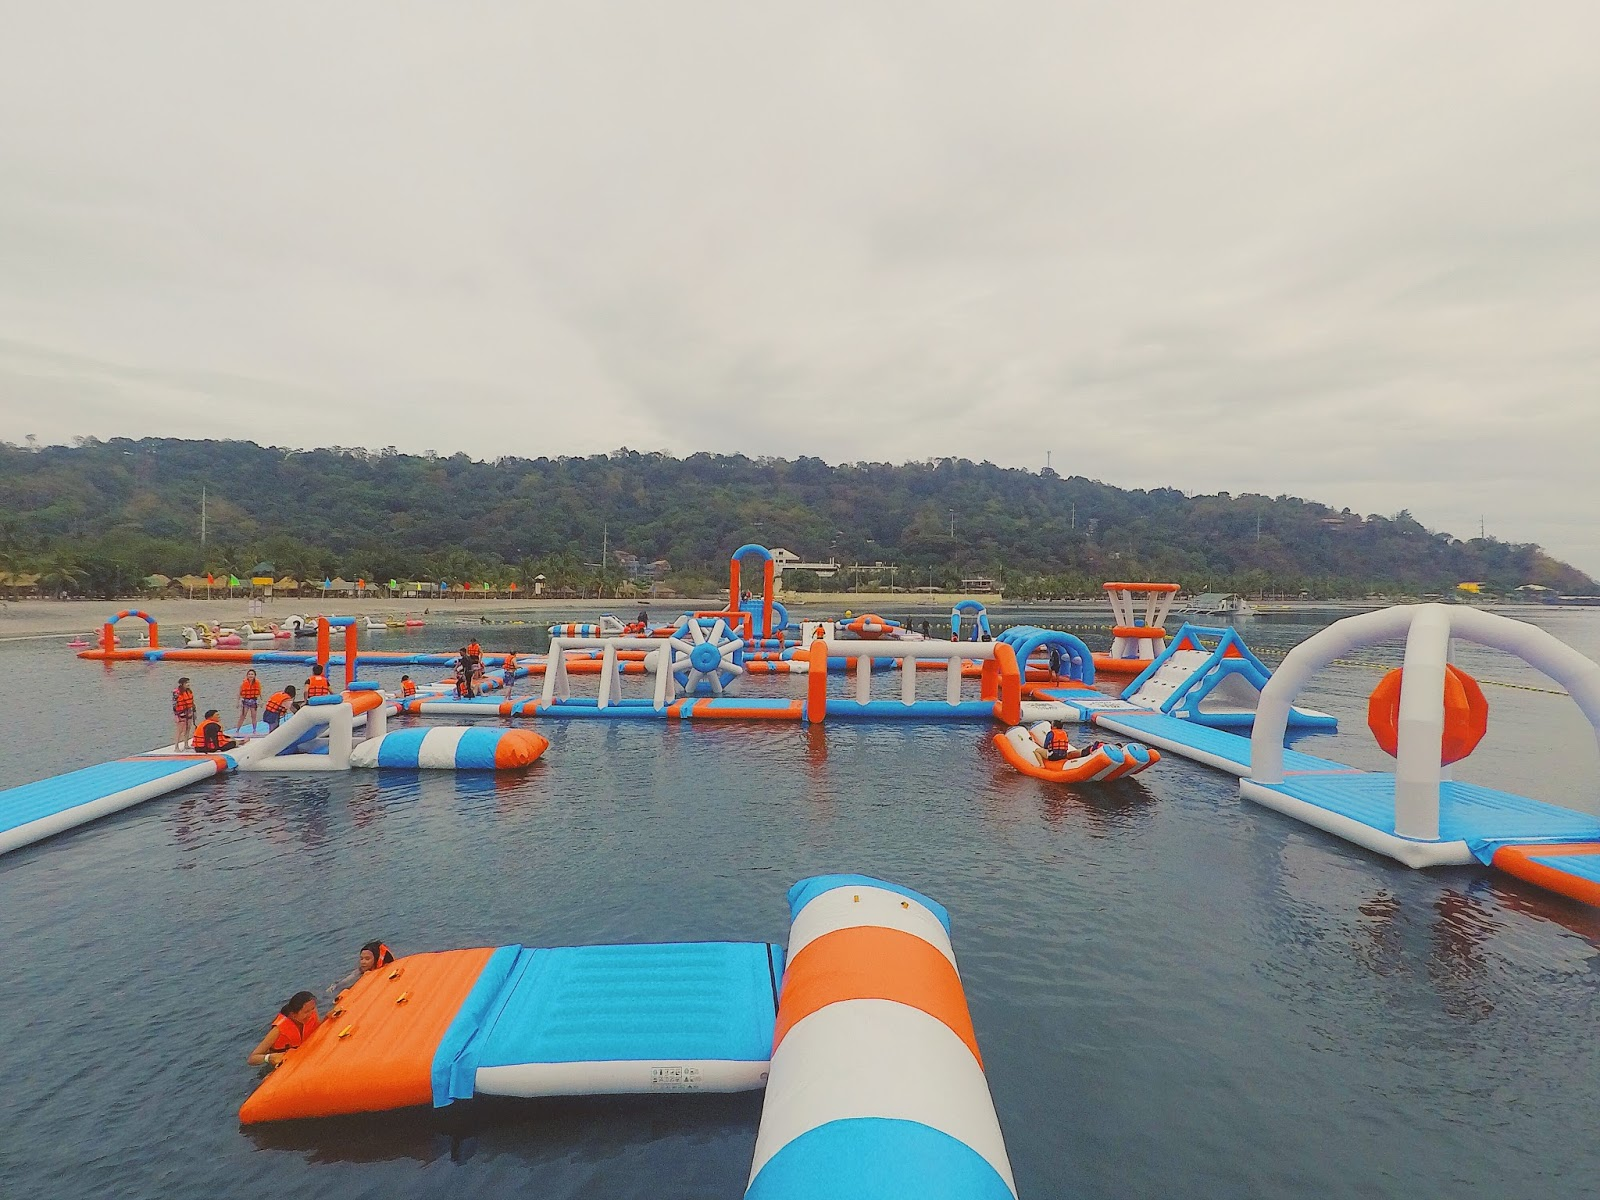 inflatable island obstacle course